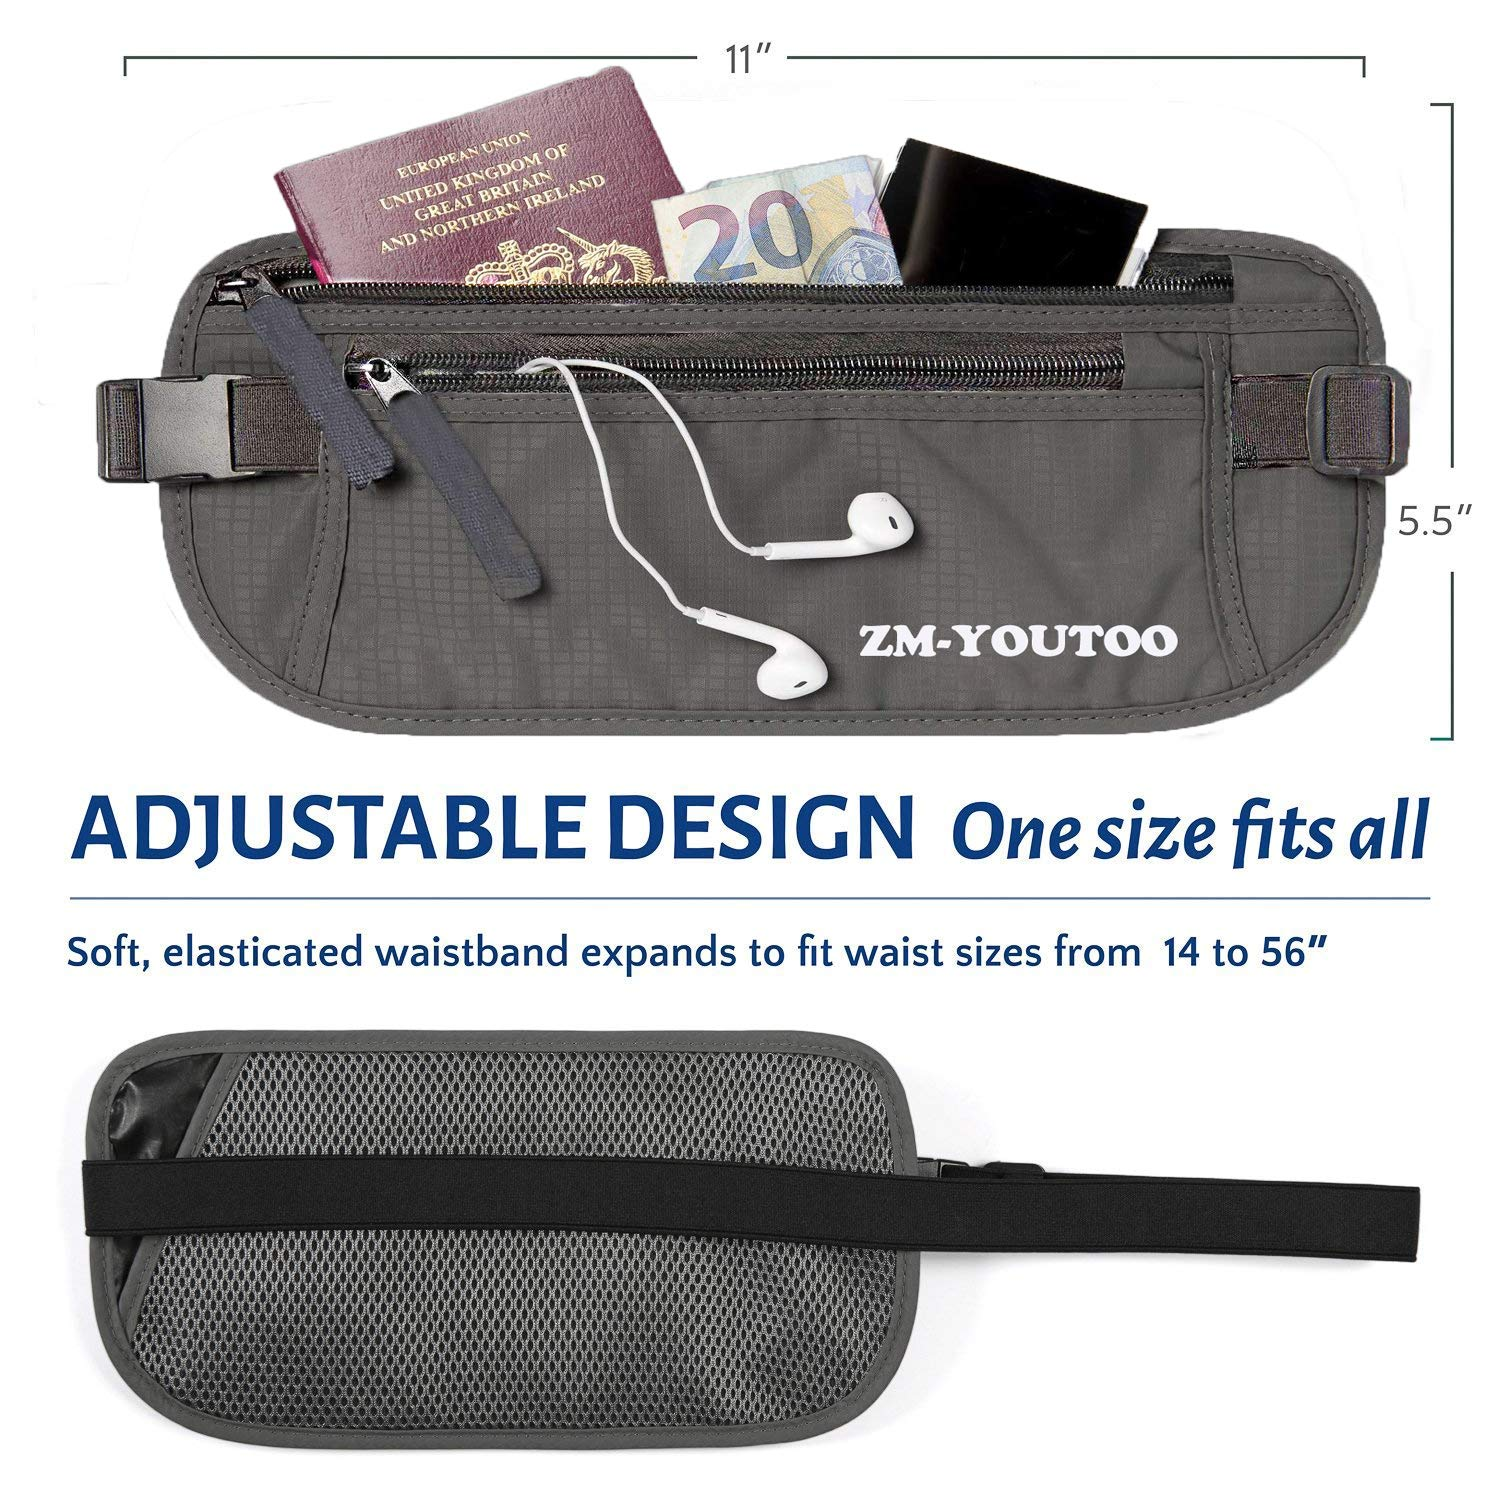 9bee5b4a2a3c ZM-YOUTOO Travel Hidden Money Belt Pouch with RFID Blocking ...